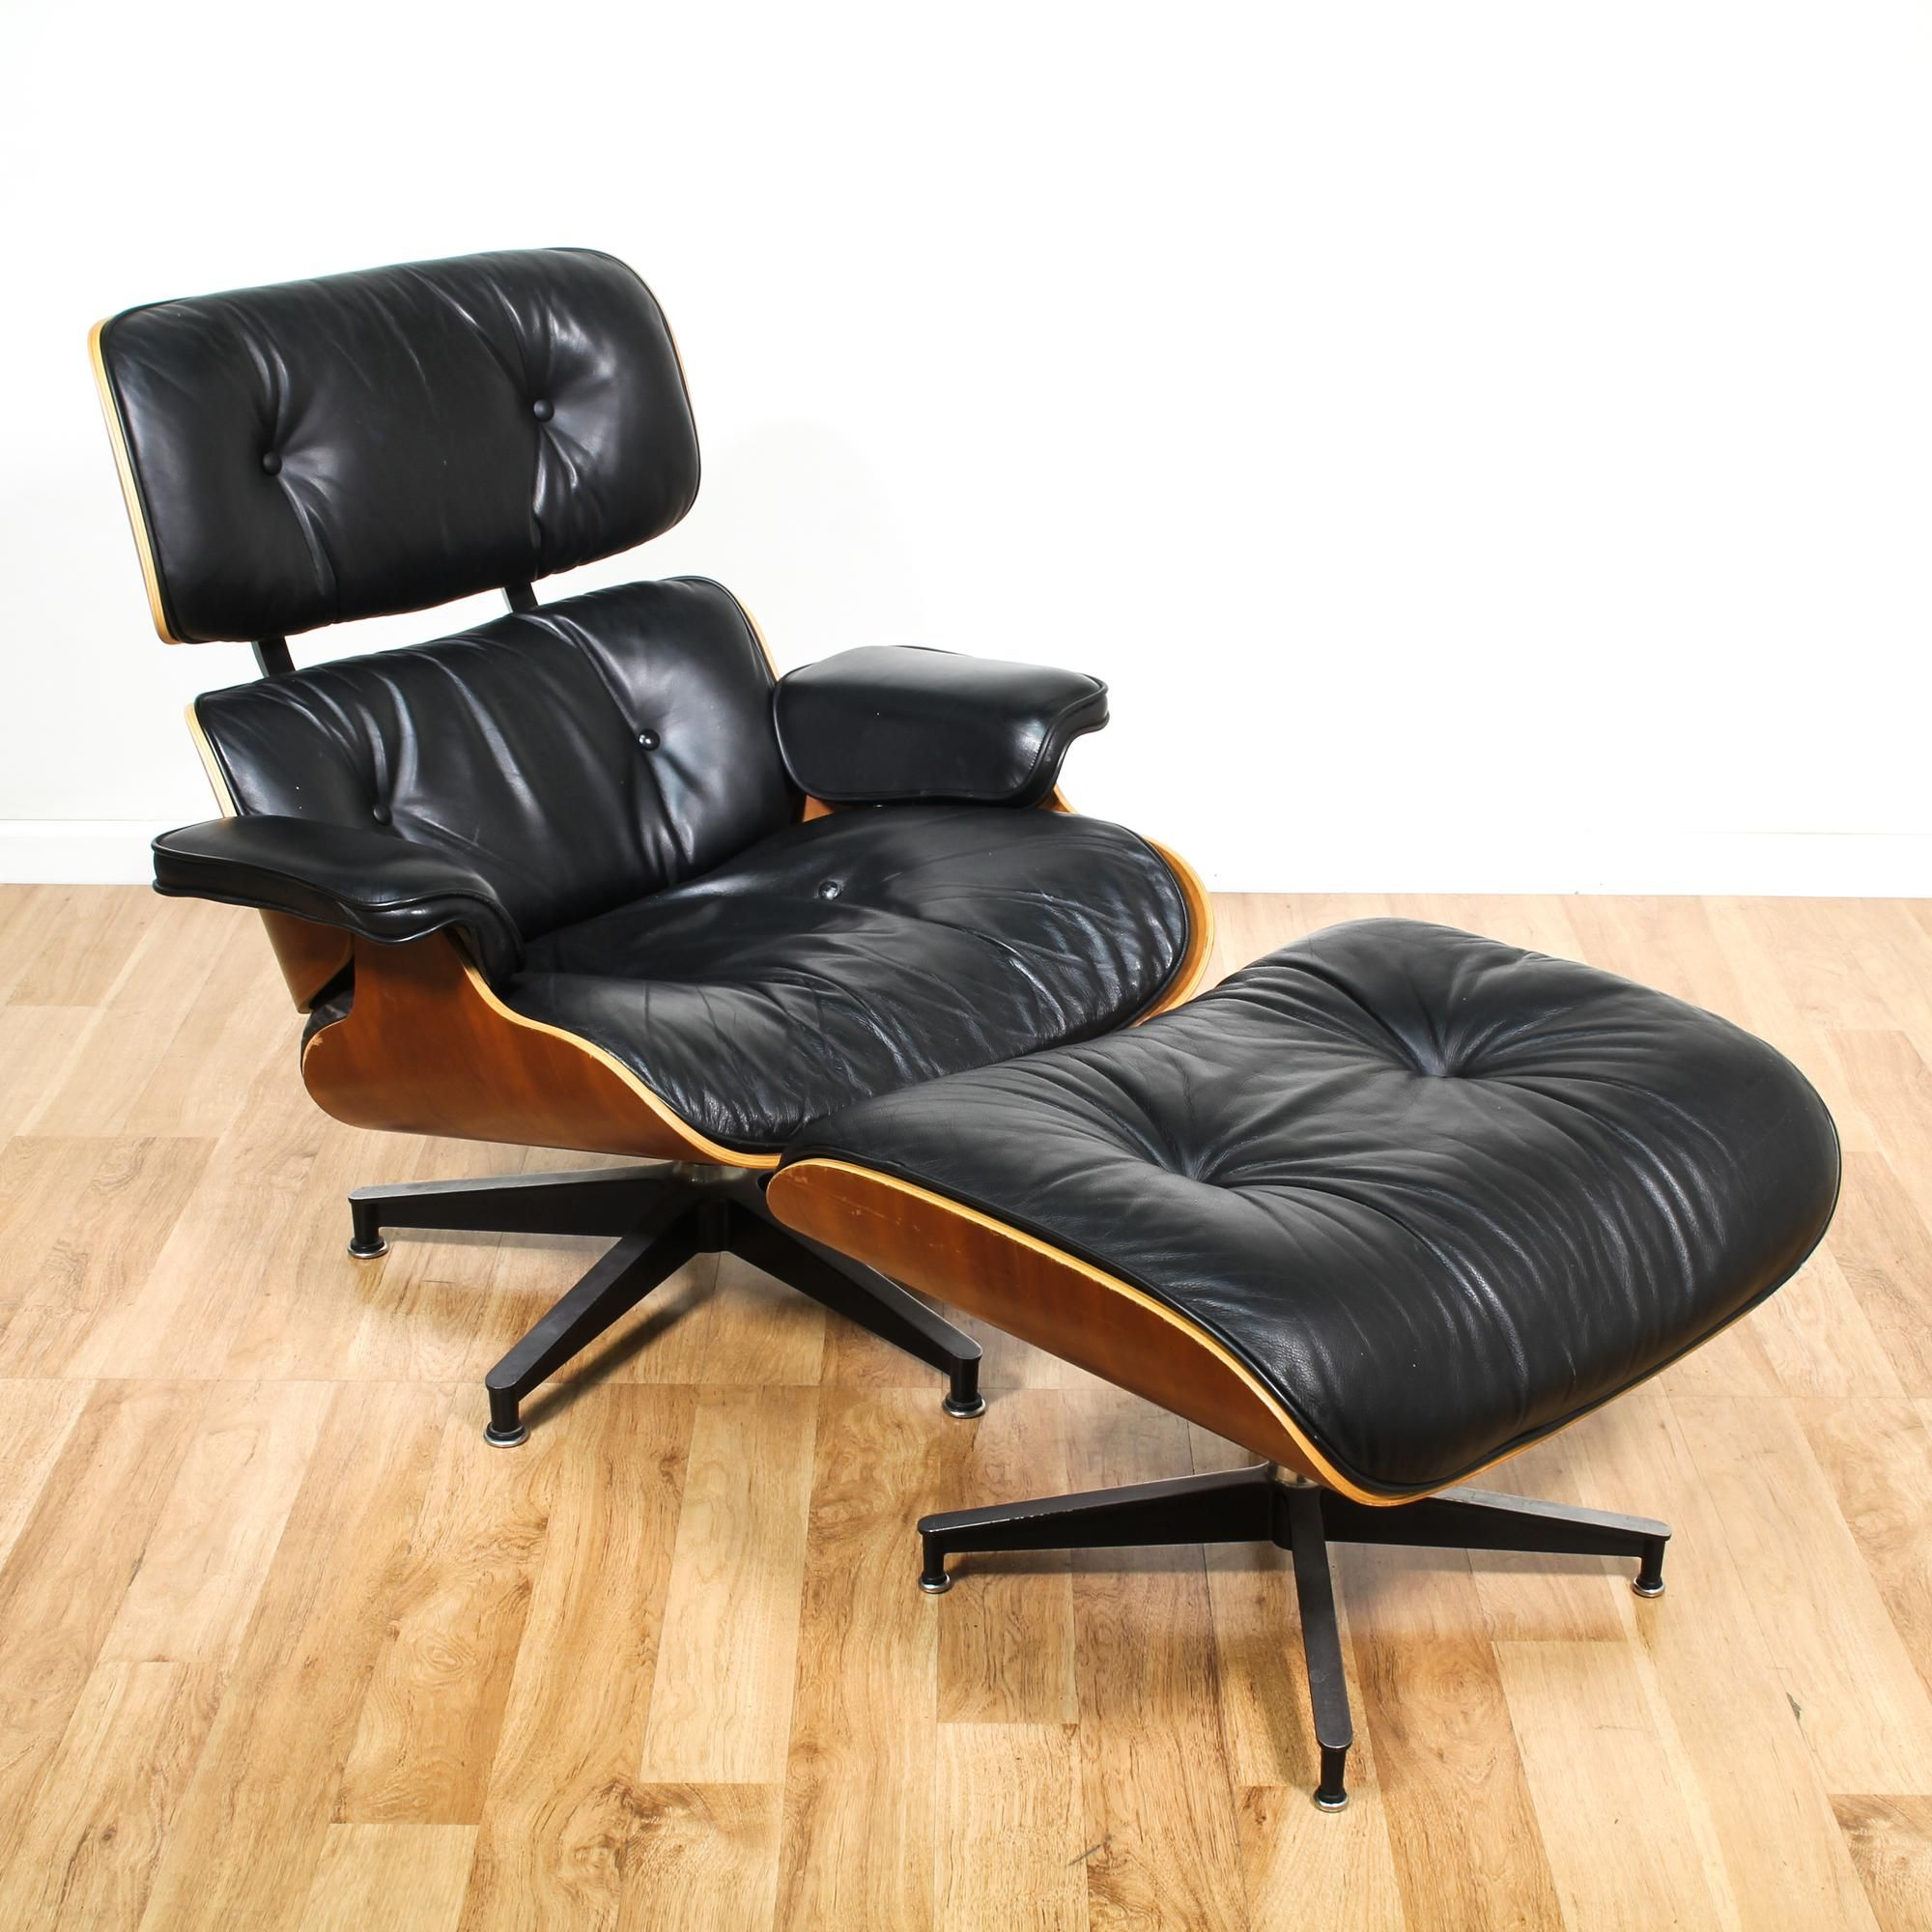 """Eames for Herman Miller"" Lounge Chair & Ottoman This"